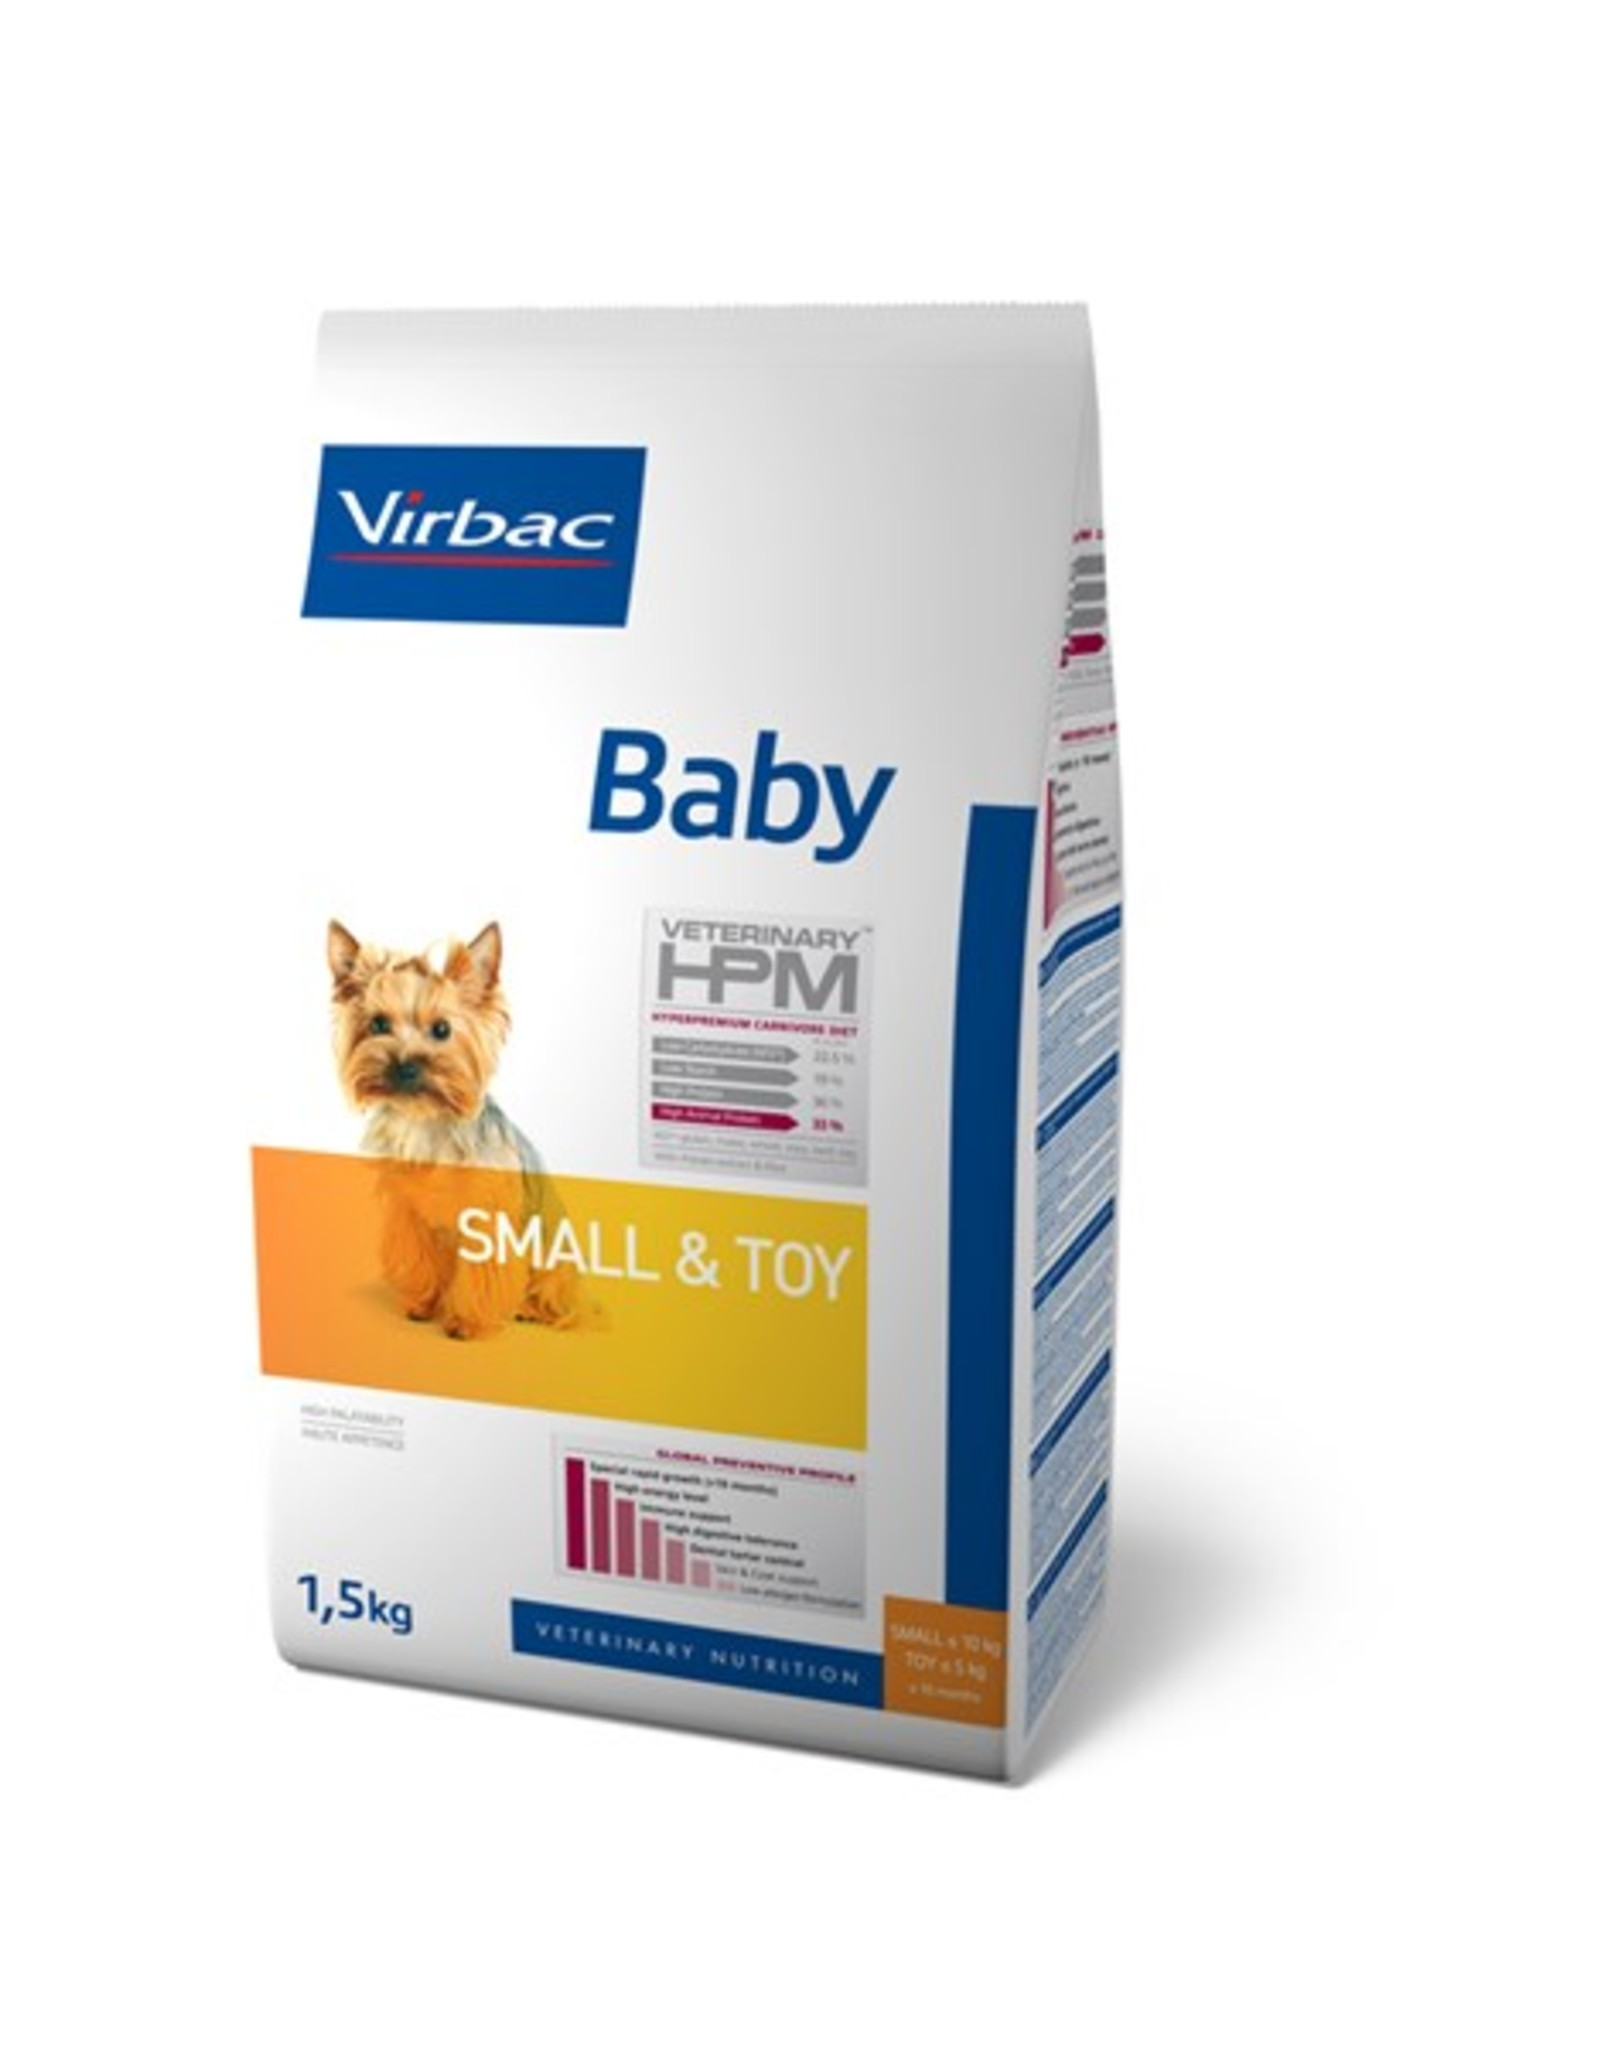 Virbac Virbac Hpm Chien Baby Small Breed/toy 3kg